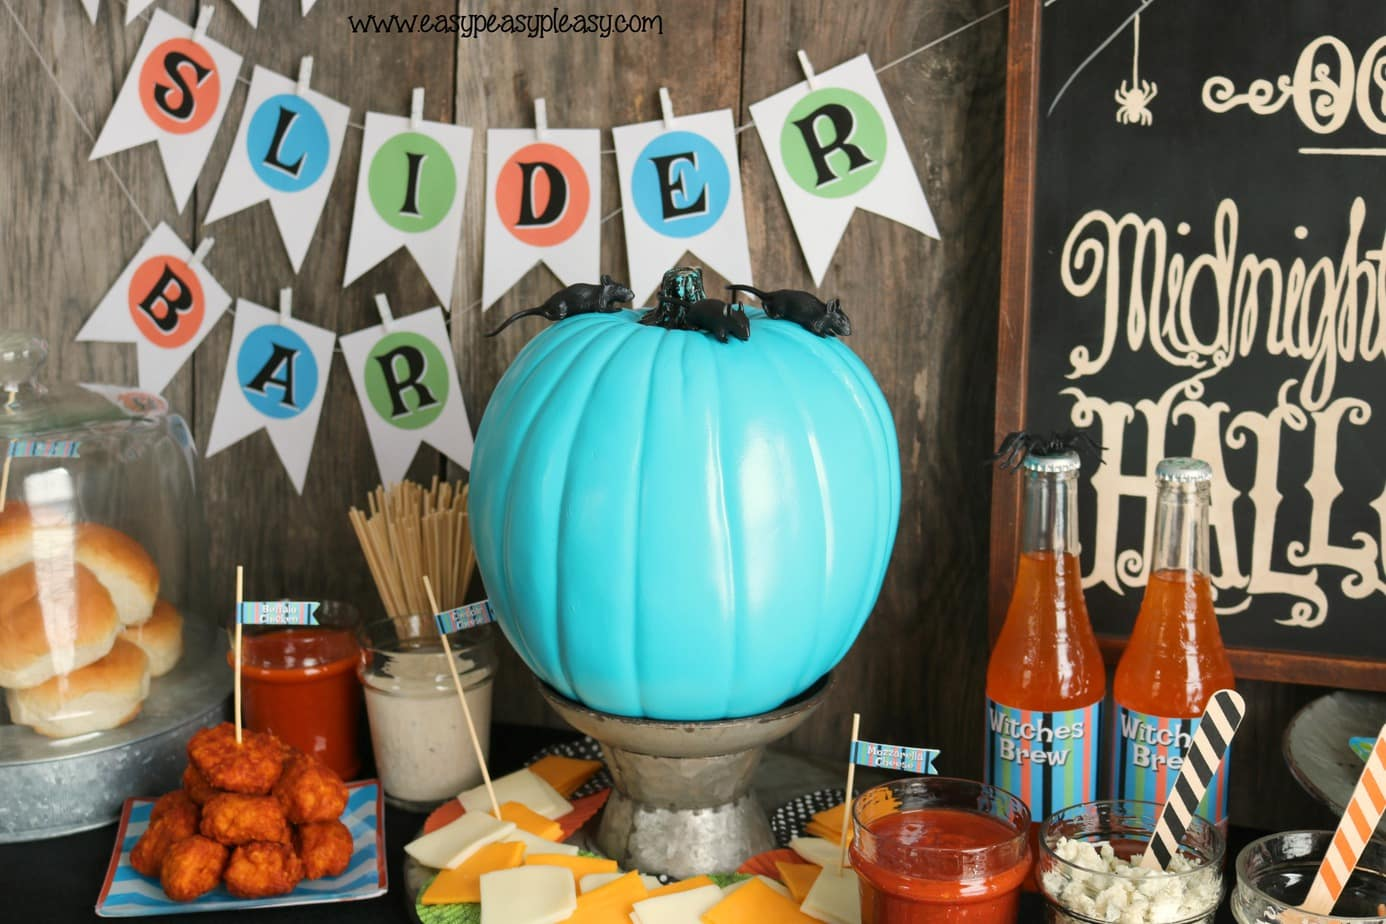 Easy Free Slider Bar Printables.